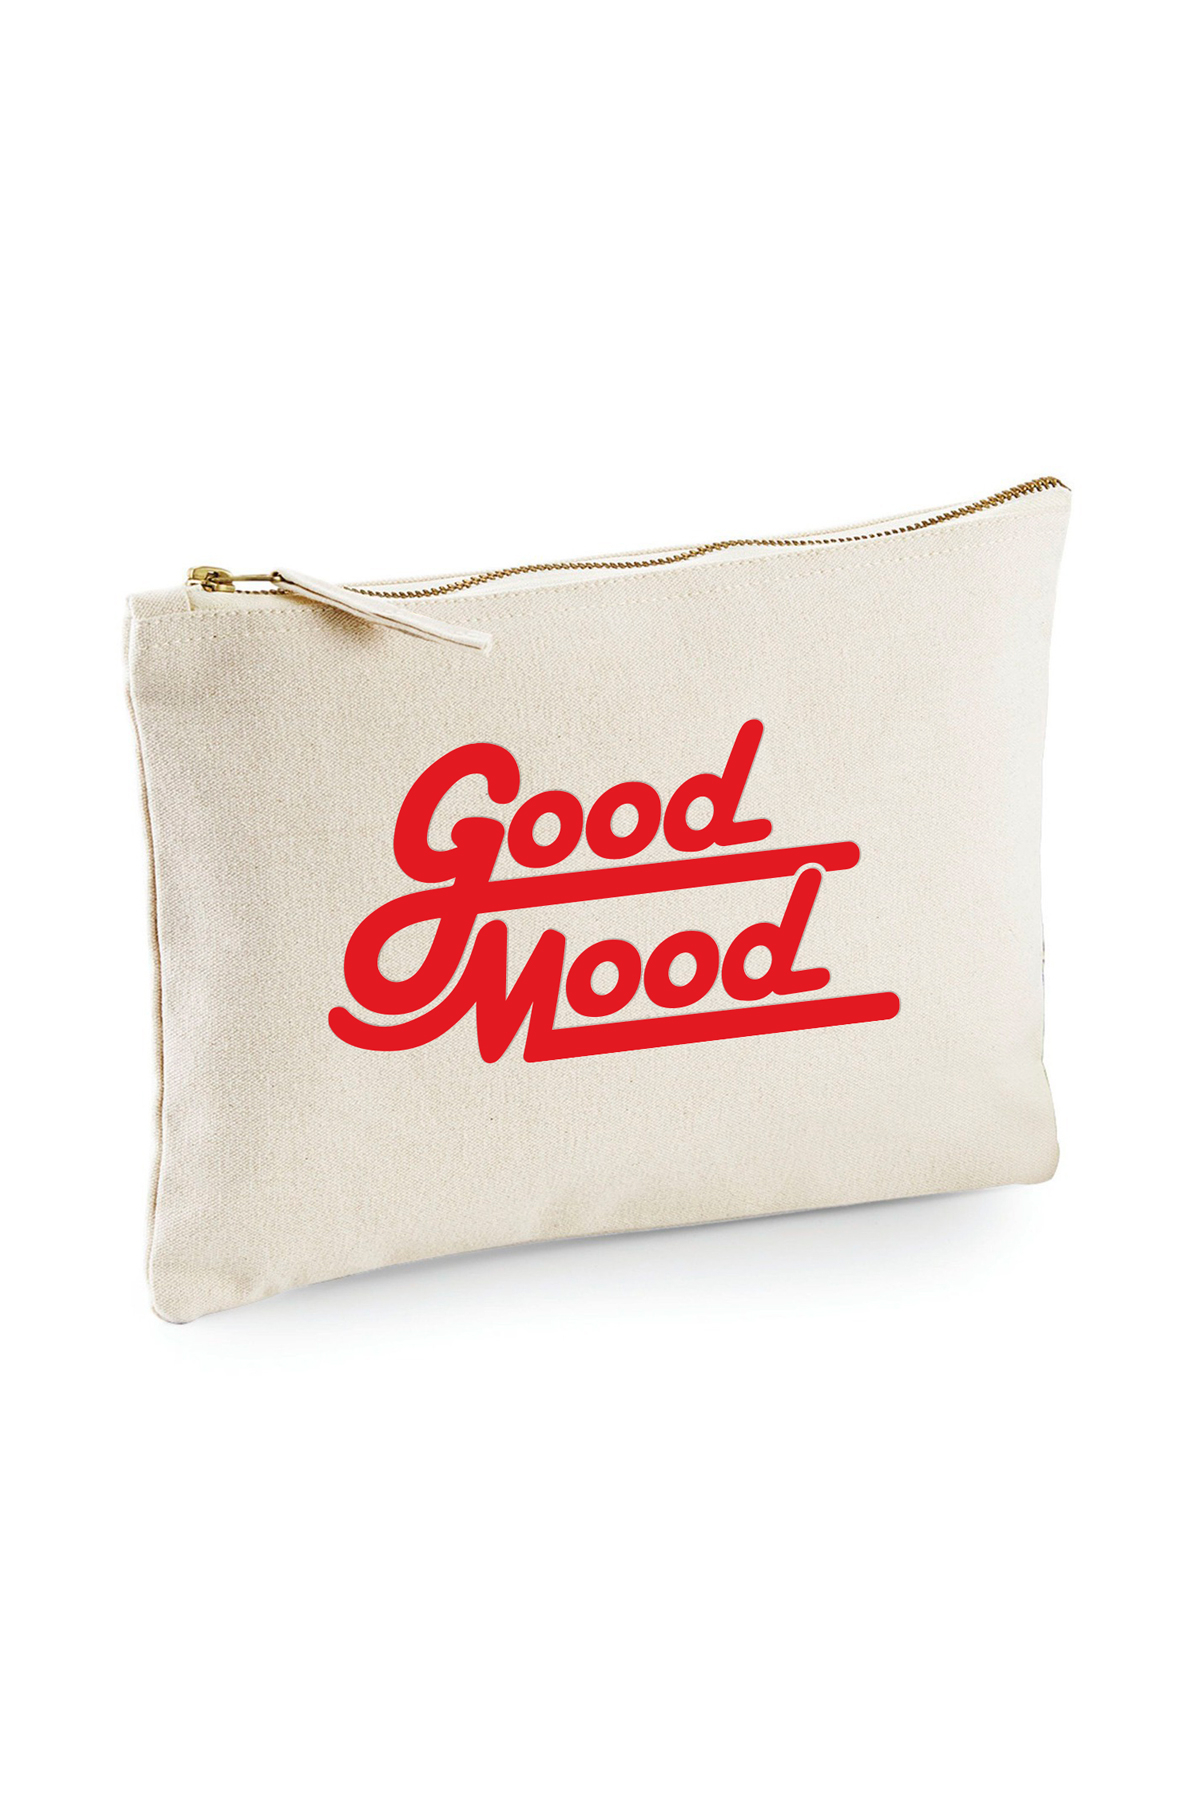 Photo de Accessoire femme Pochette GOOD MOOD chez French Disorder